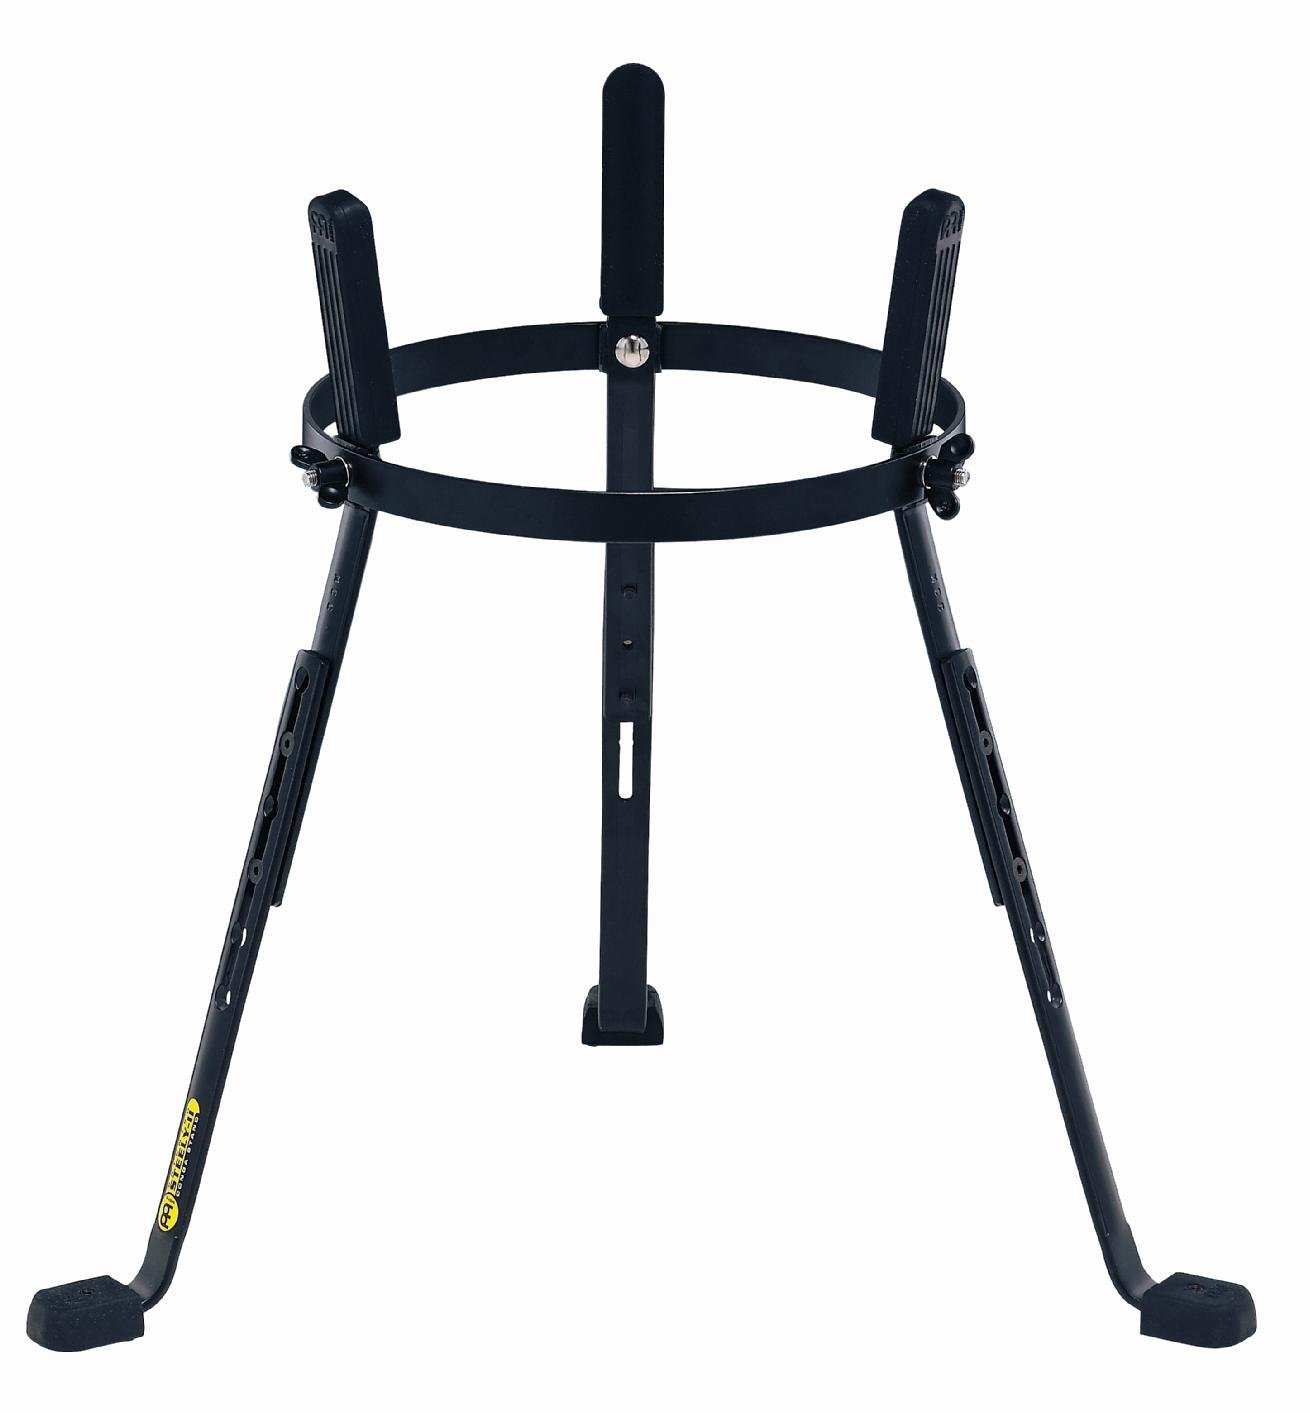 Meinl Percussion ST-MCC1212BK Steely II Height Adjustable Stand for 12-Inch MEINL MCC Congas, Black